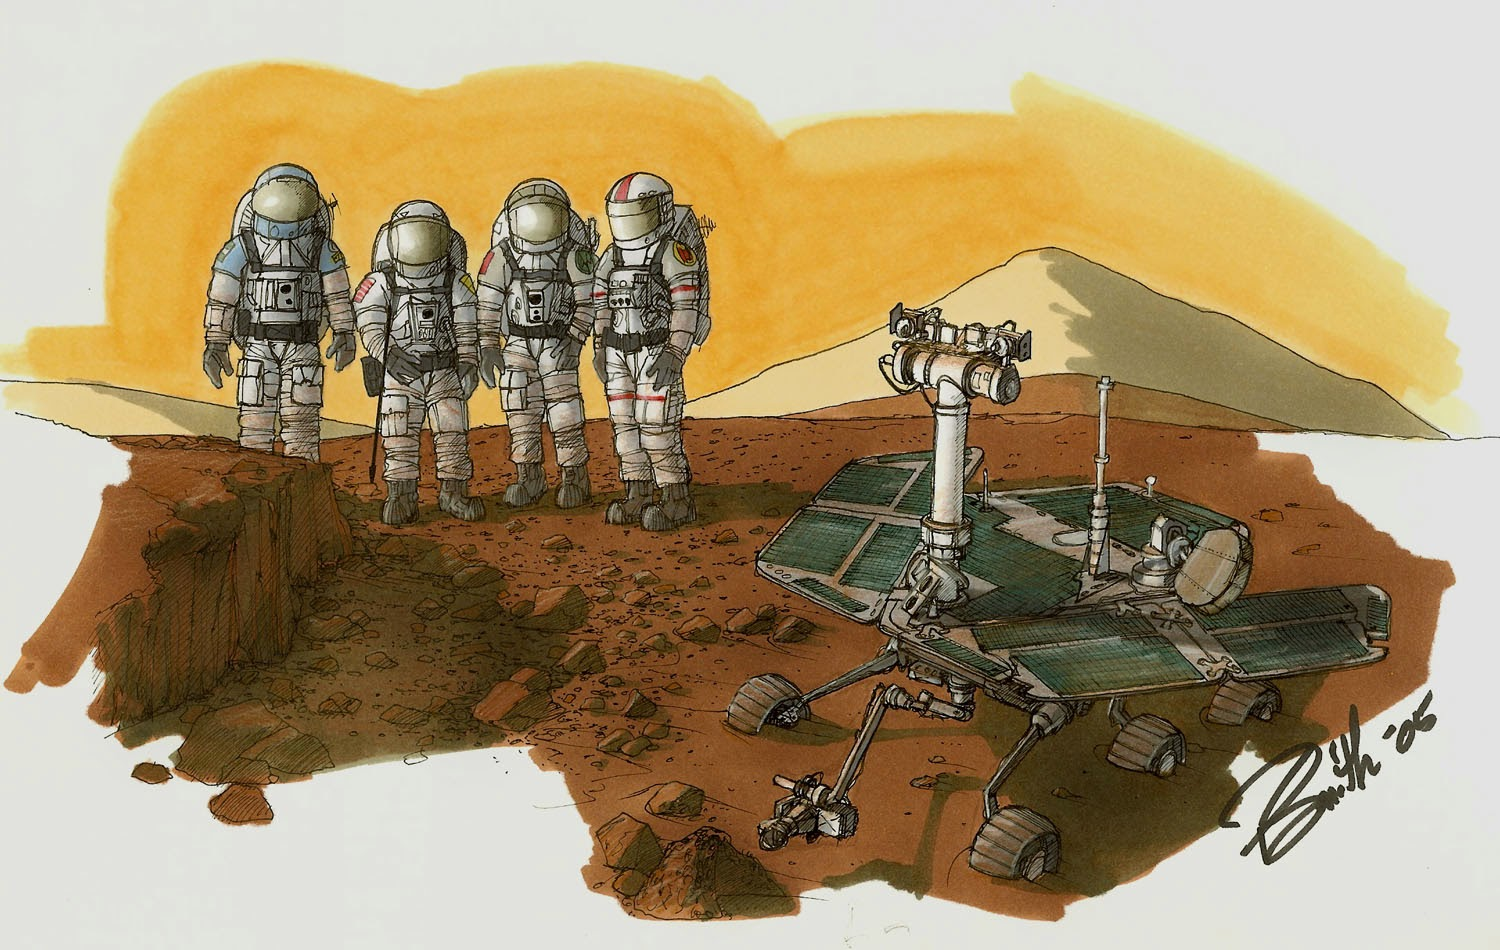 Spirit Mars rover by Phil Smith